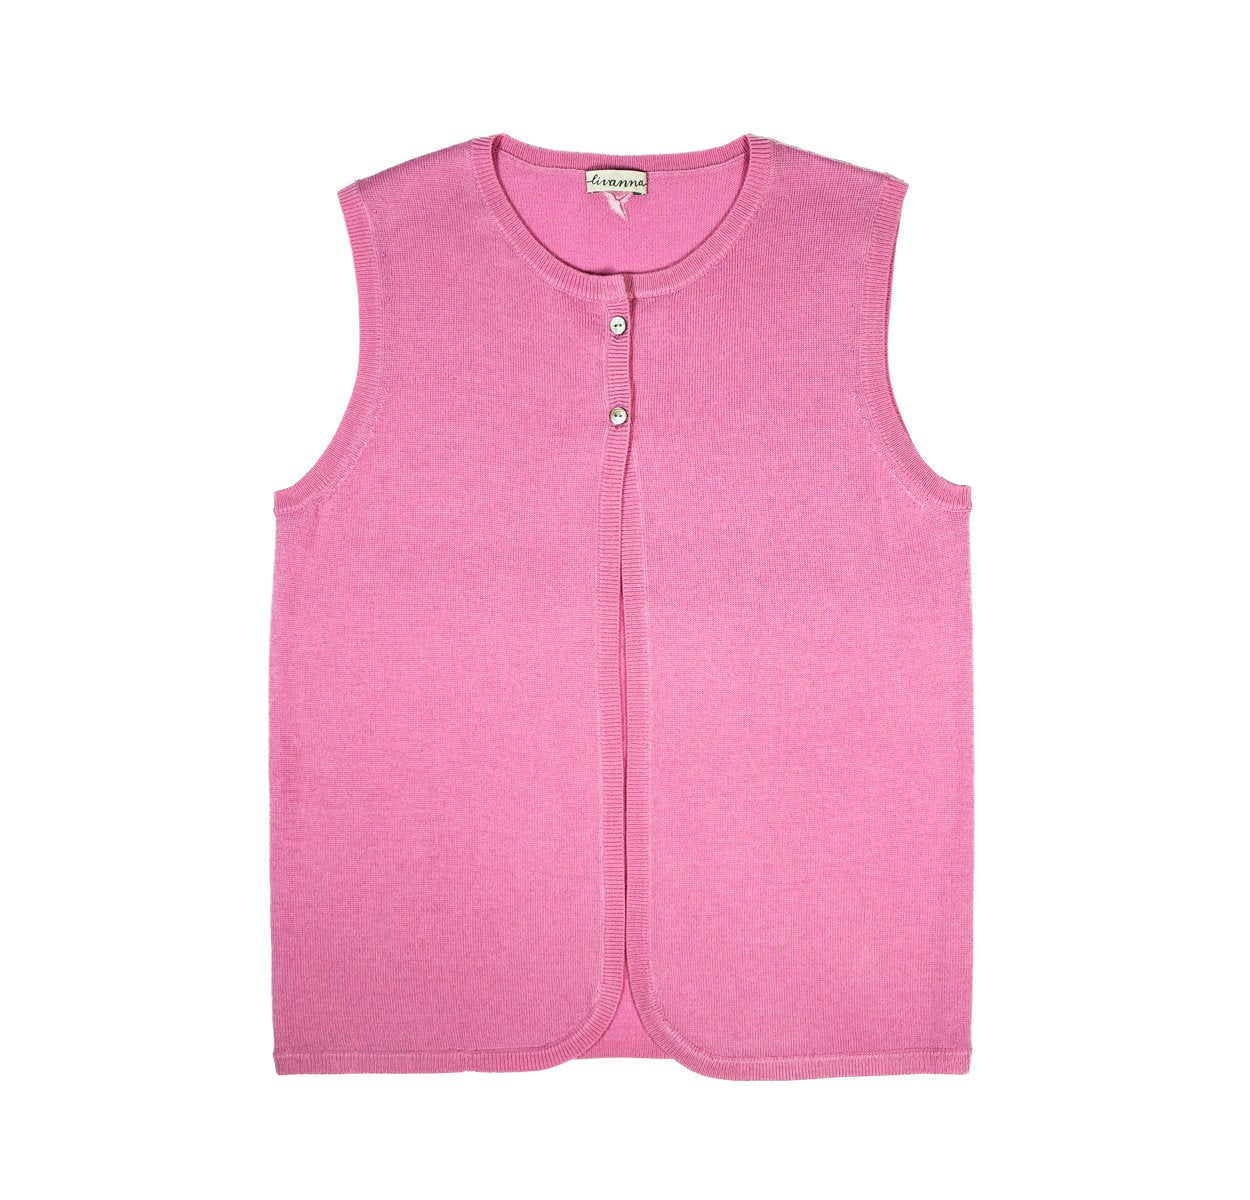 Two Buttons Girl's Vest